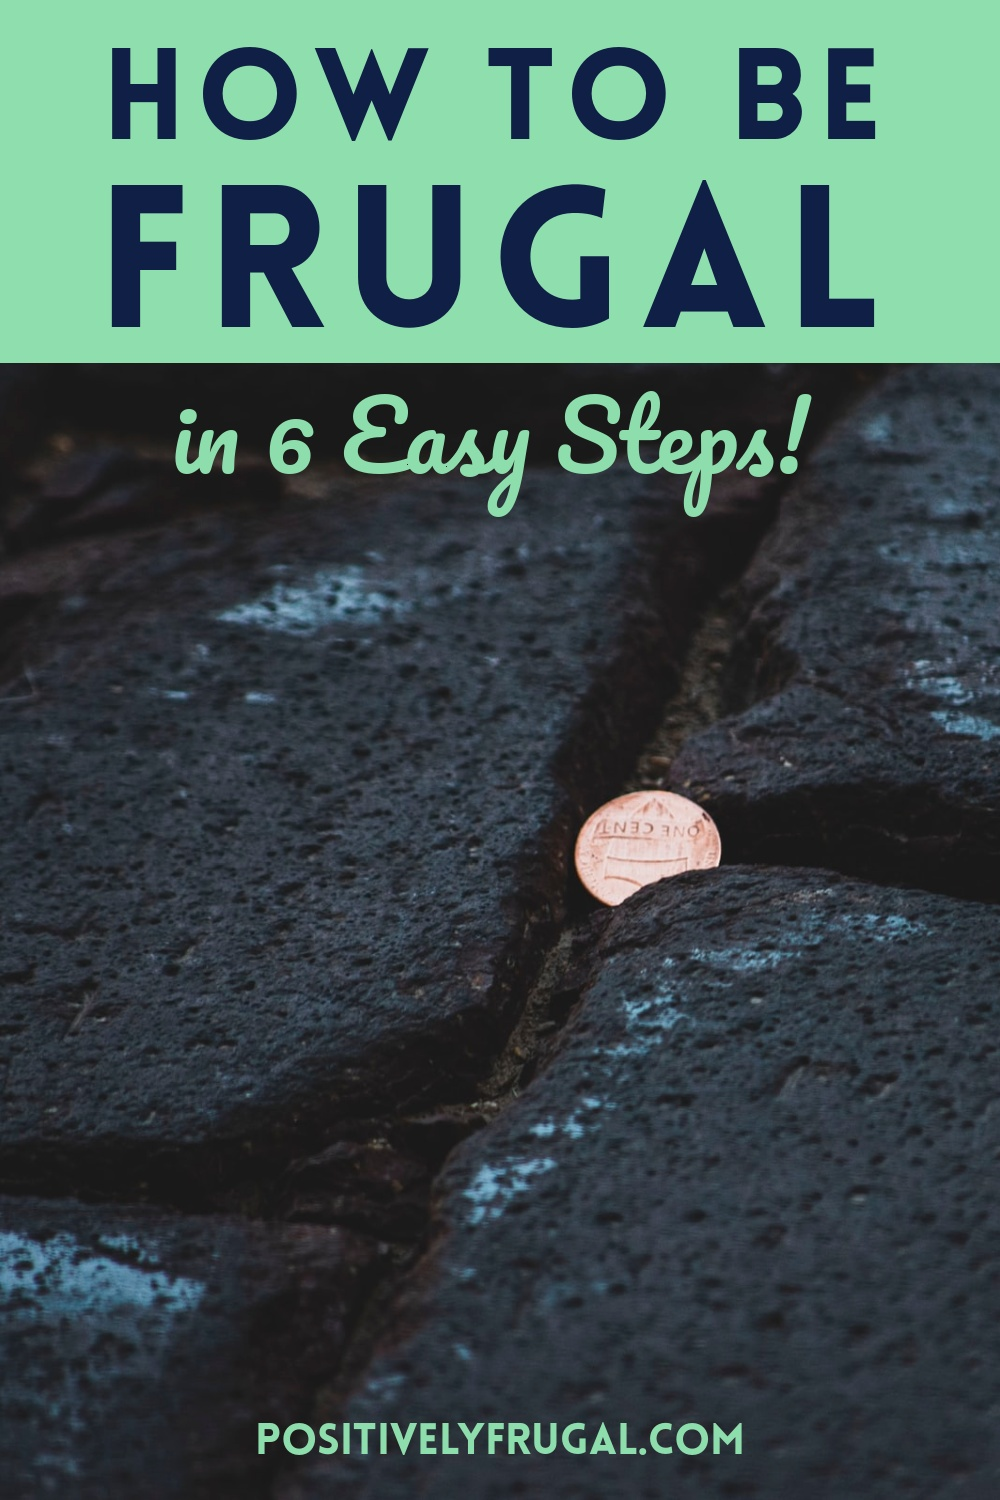 Six Steps to Being Frugal by PositivelyFrugal.com